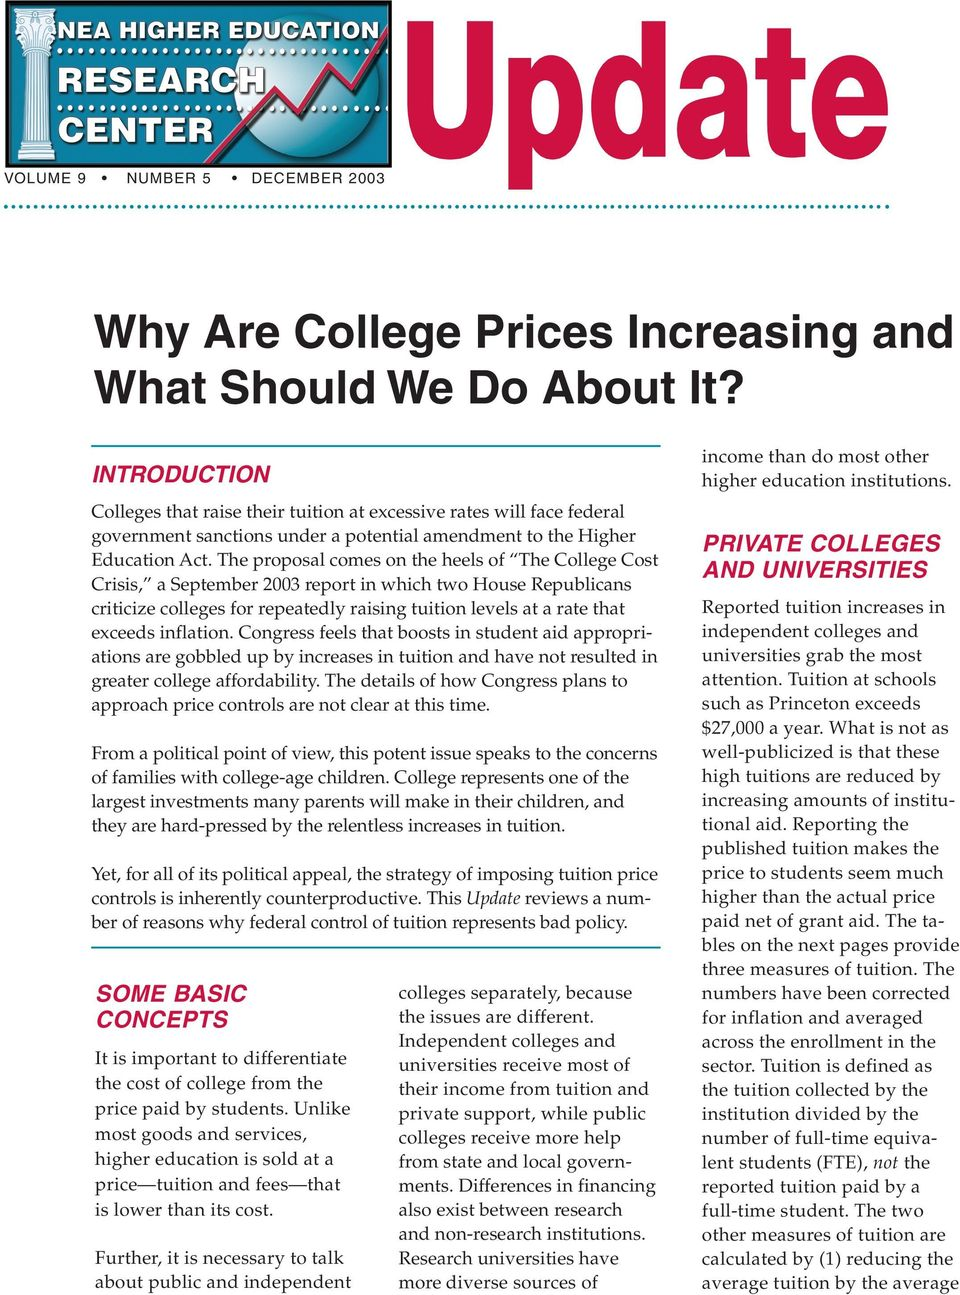 The proposal comes on the heels of The College Cost Crisis, a September 2003 report in which two House Republicans criticize colleges for repeatedly raising tuition levels at a rate that exceeds